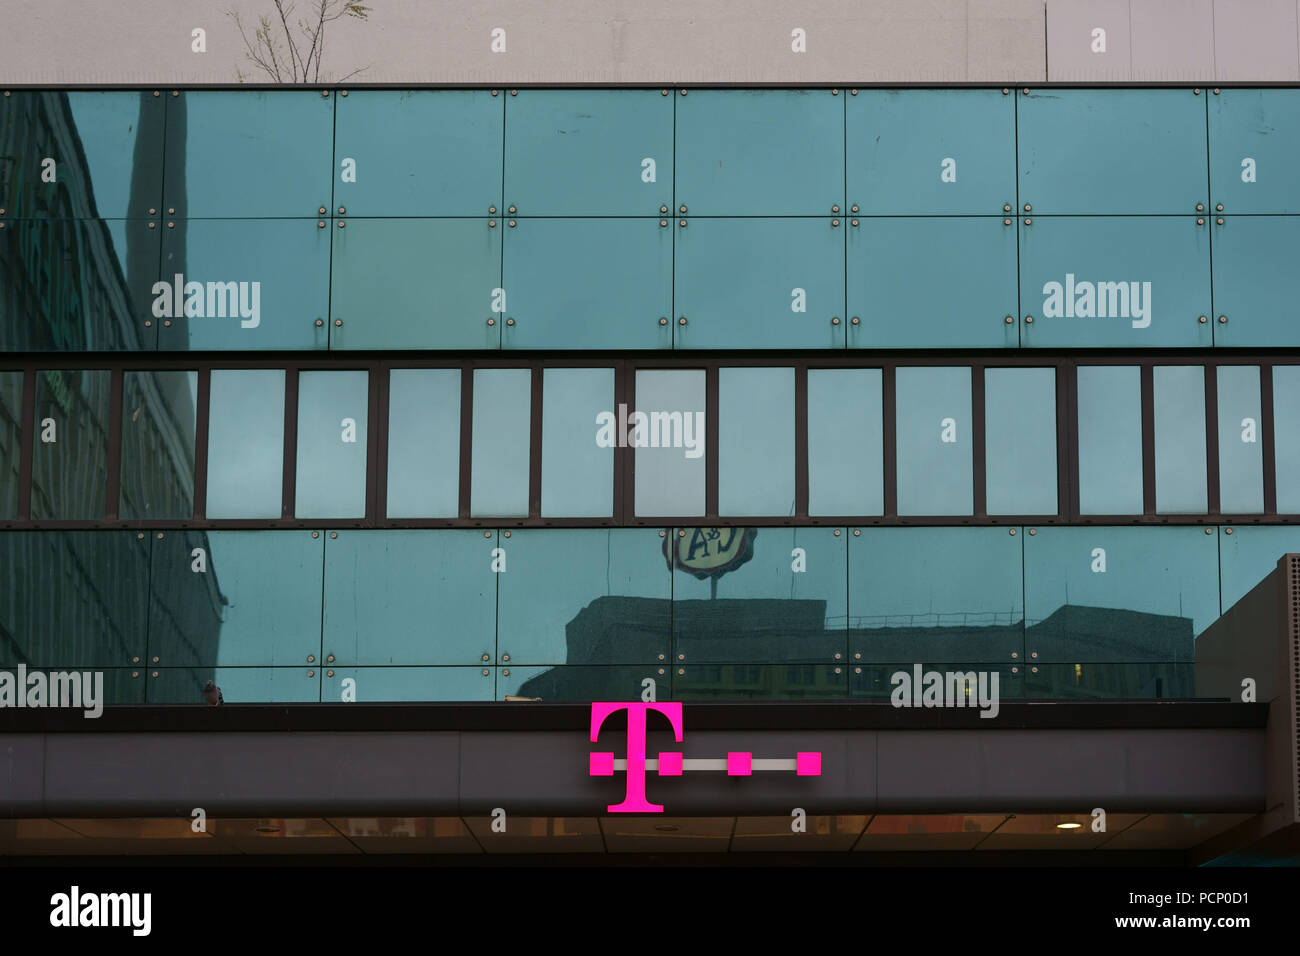 The logo of a Telekom shop on the modern glass facade of a department store on Berlin's Alexanderplatz. - Stock Image